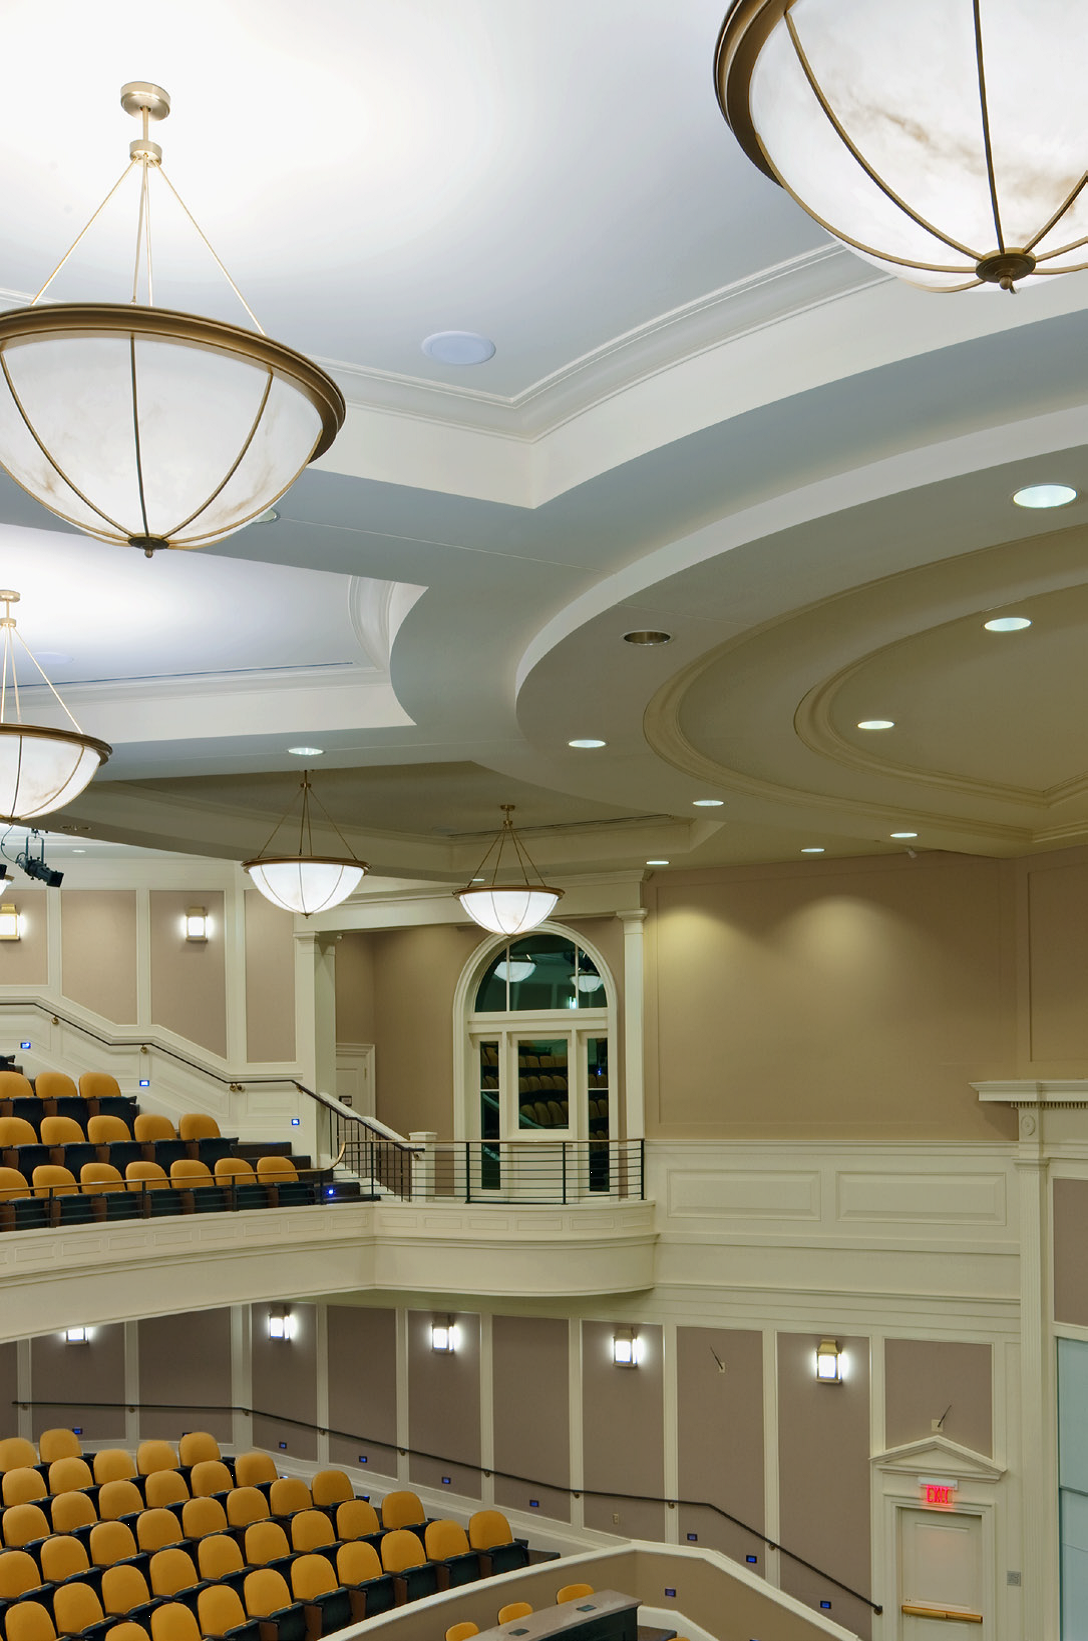 Shaper chandeliers. Auditorium at Farmer School of